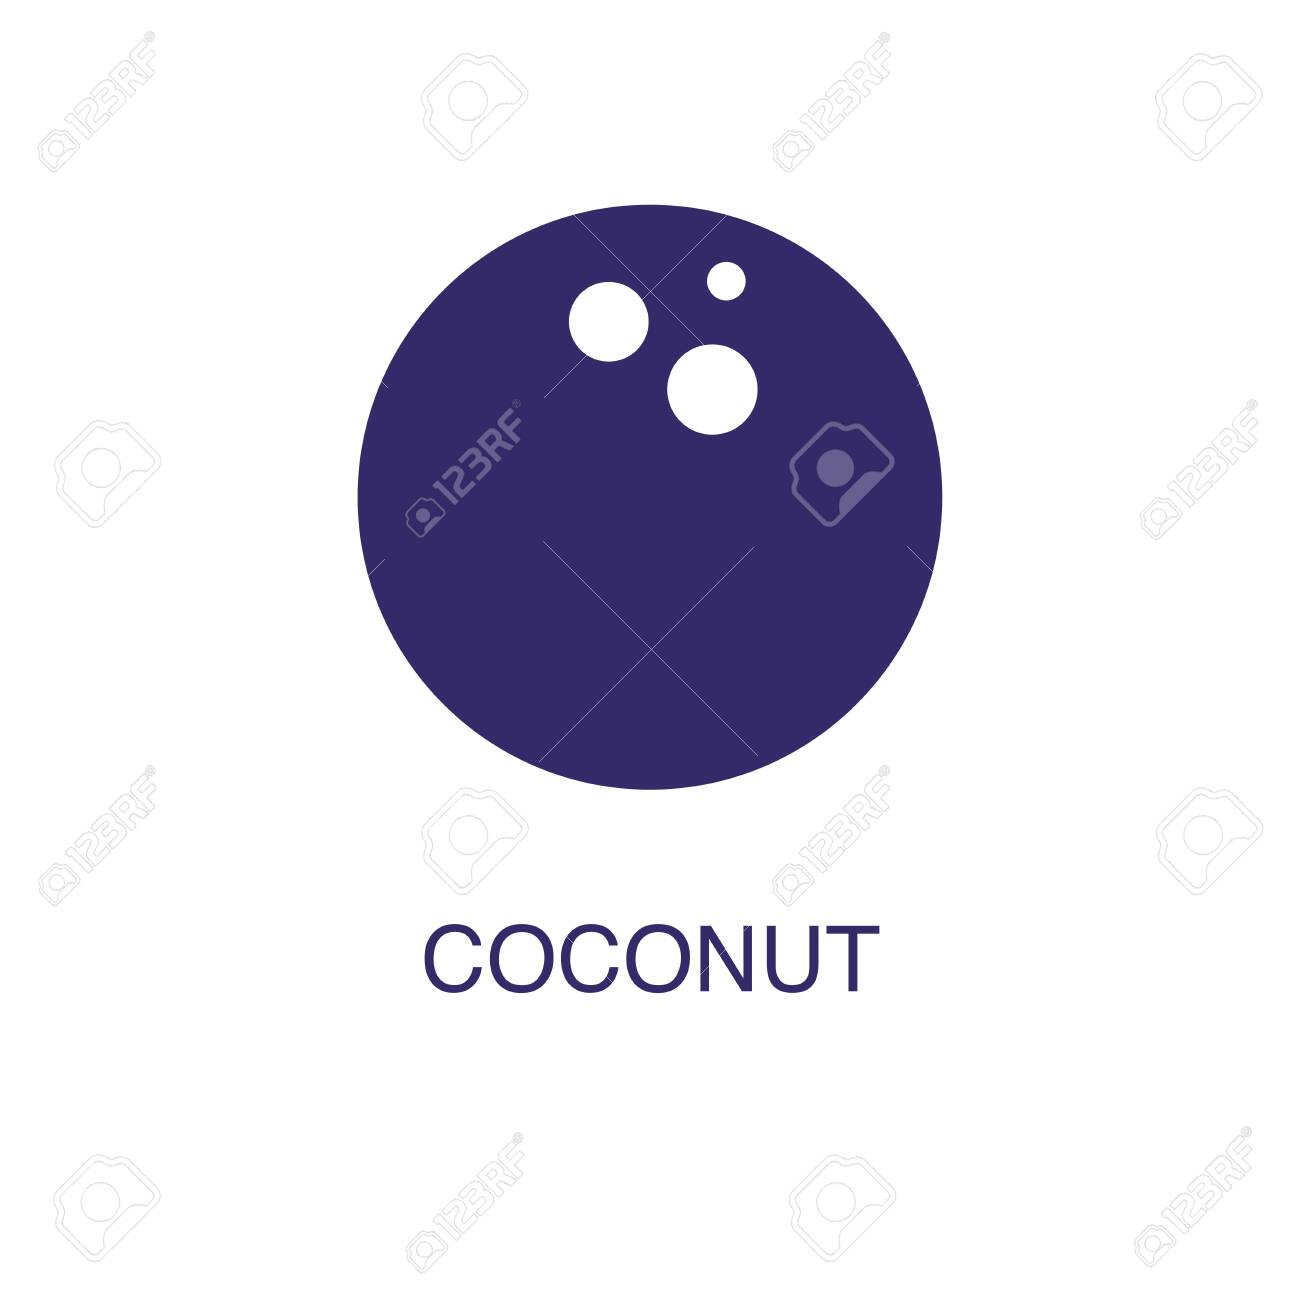 Coconut element in flat simple style on white background. Coconut icon, with text name concept template - 134450831